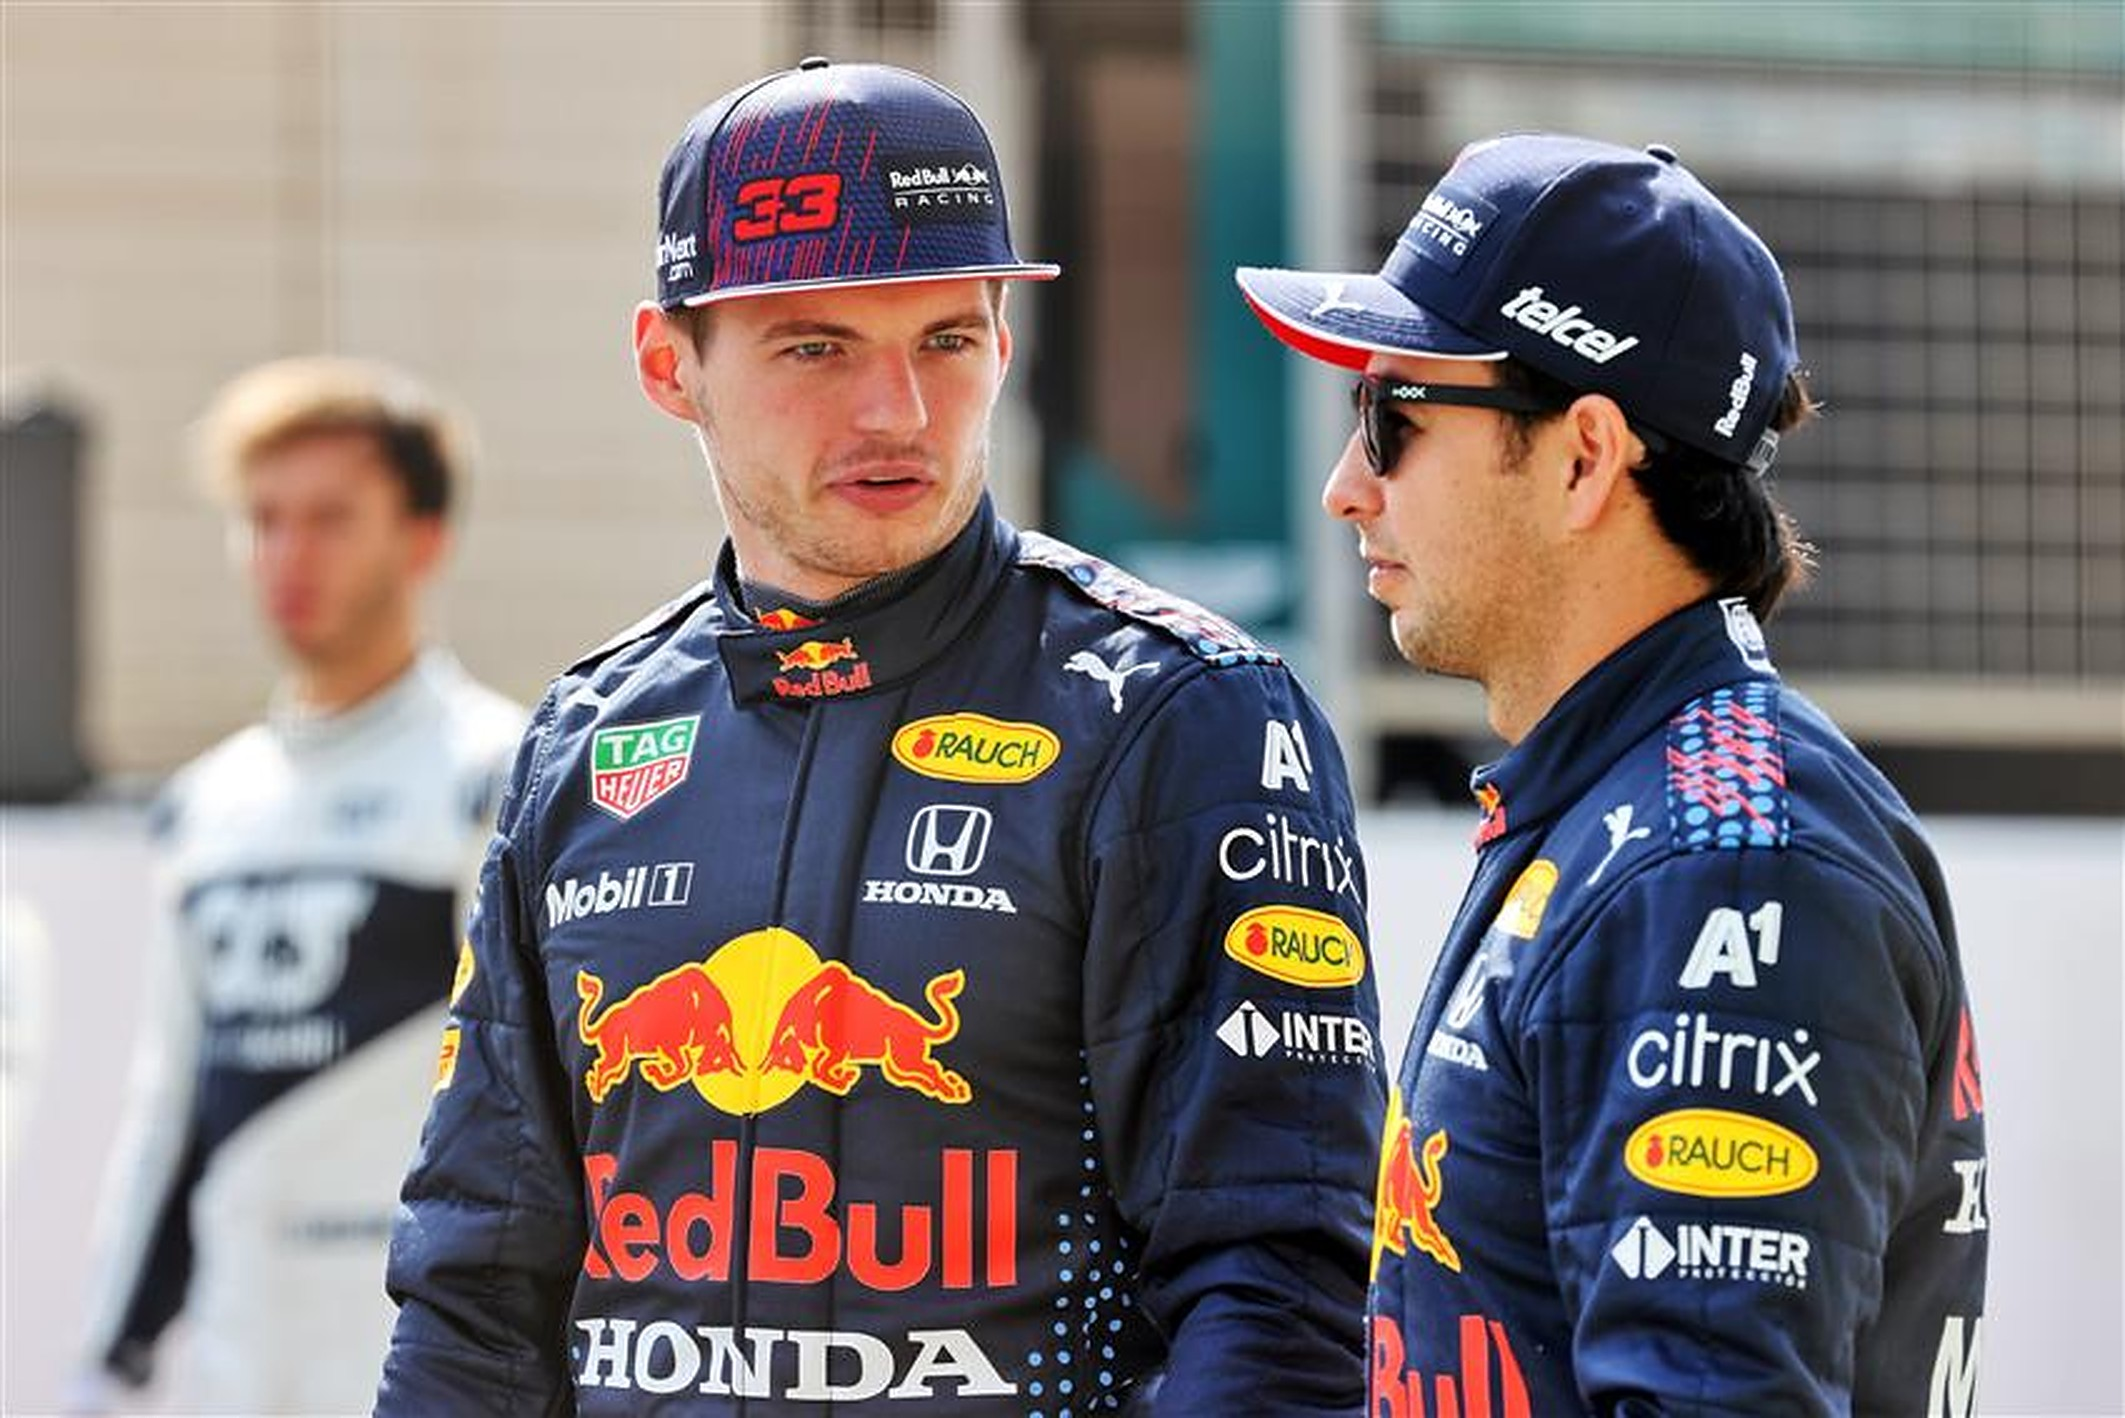 Sergio Perez and Max Verstappen at Red Bull - Formula1news.co.uk